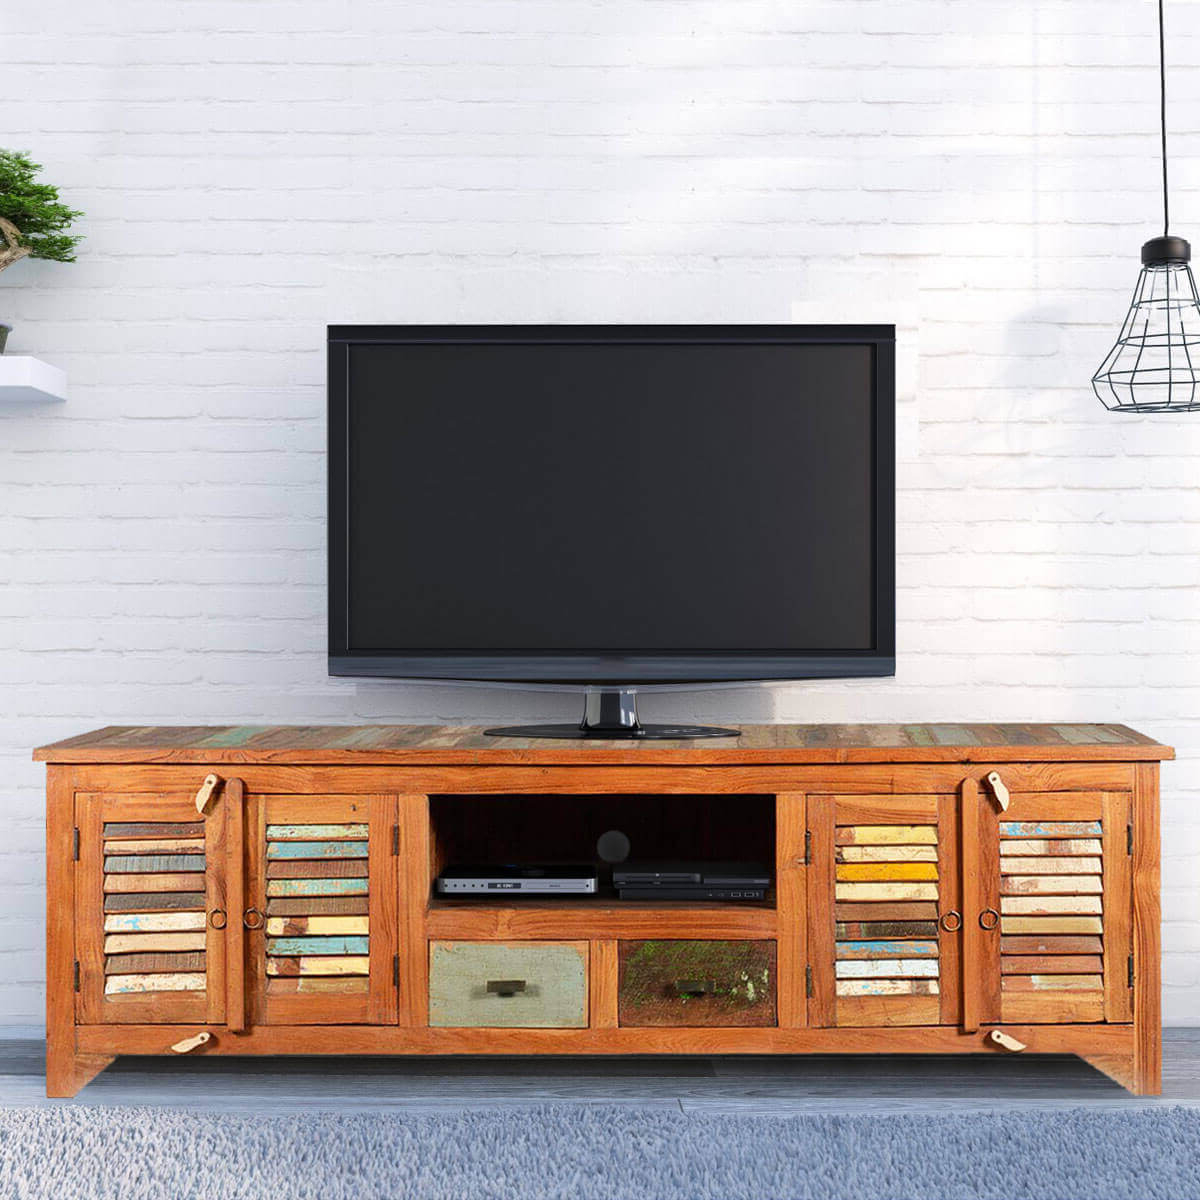 Popular Rounded Corners Mosaic Reclaimed Wood Rustic Tv Media Cabinet With Tv Stands Rounded Corners (View 15 of 20)